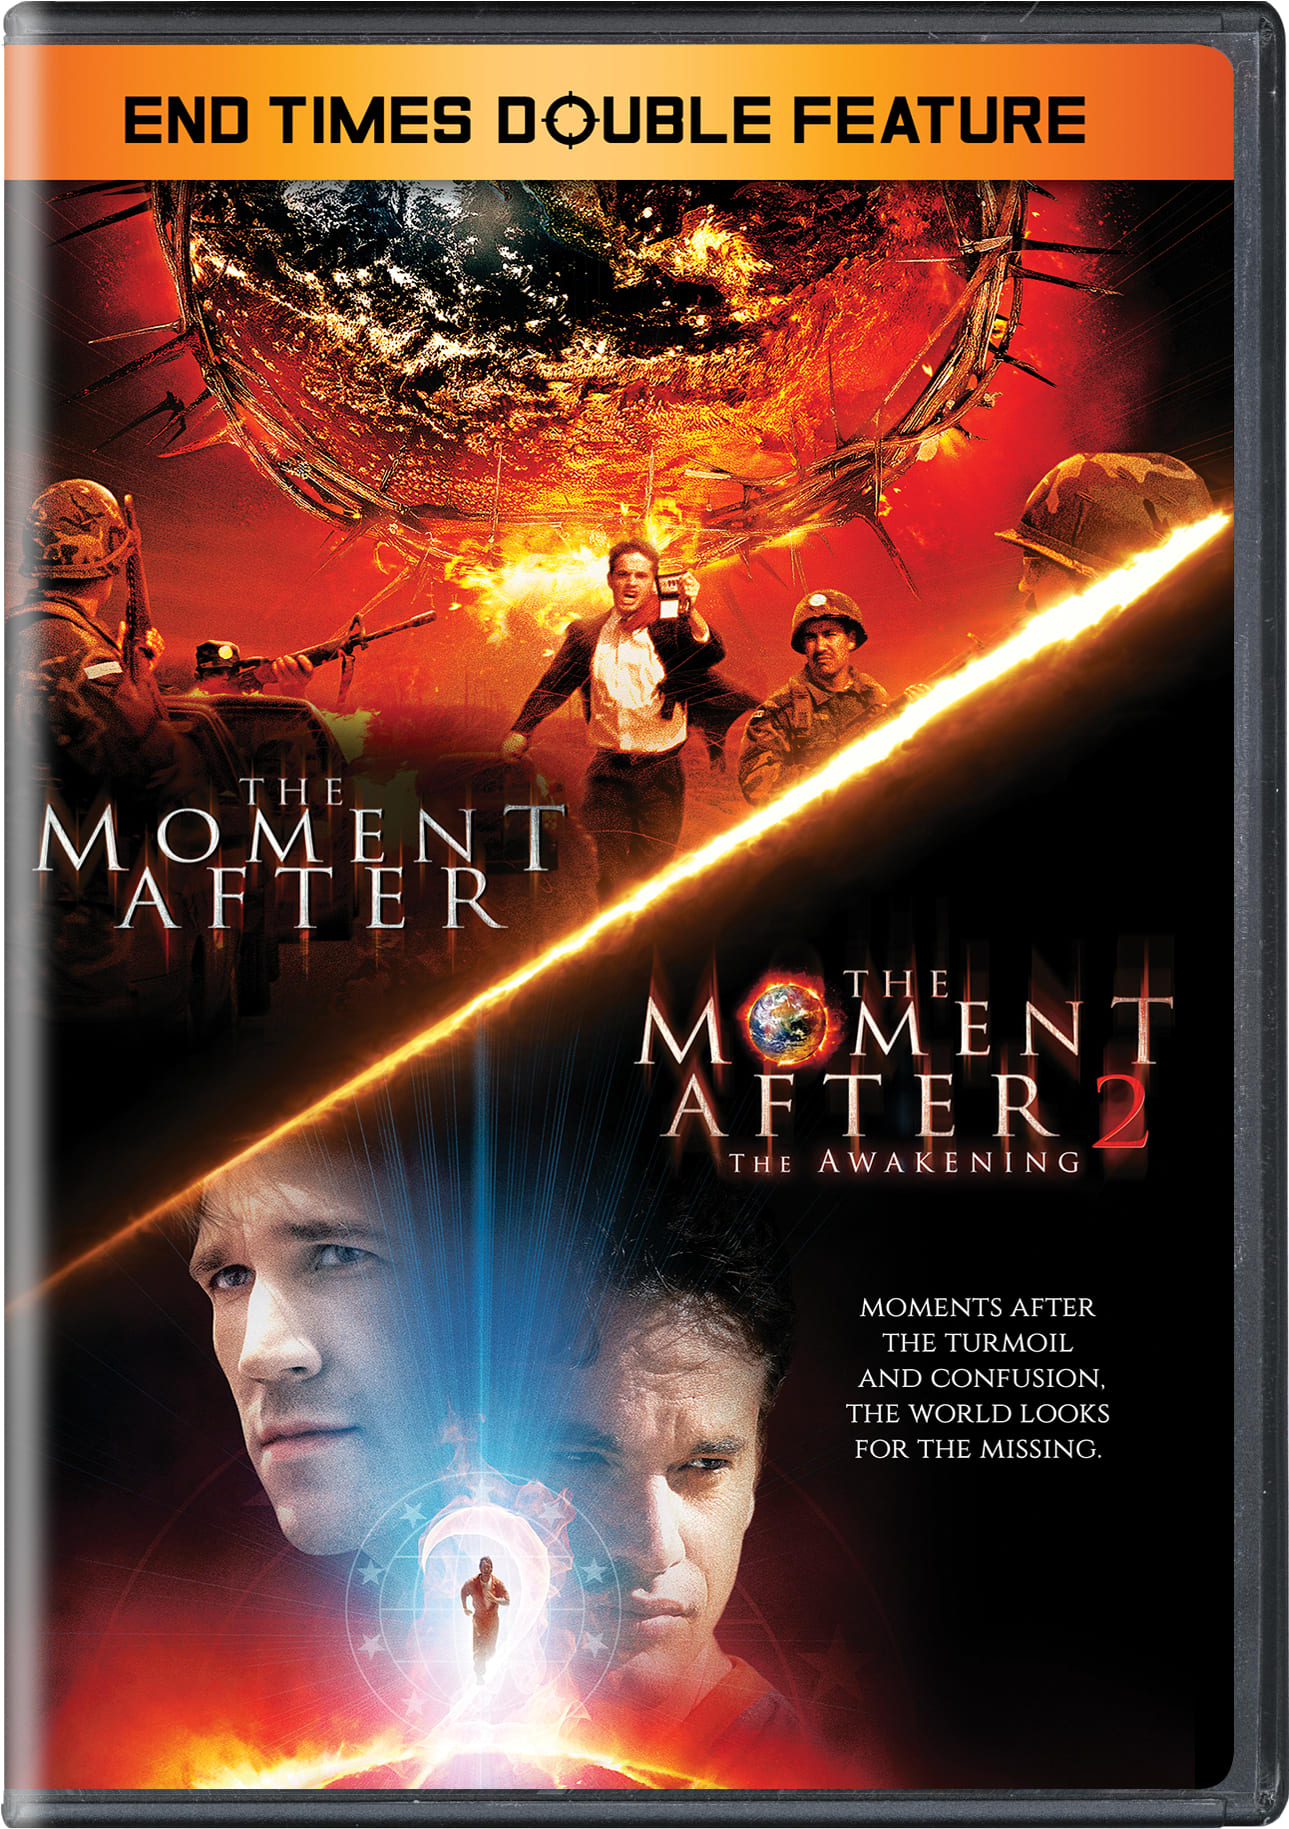 The Moment After/The Moment After 2: The Awakening - End Times [DVD]